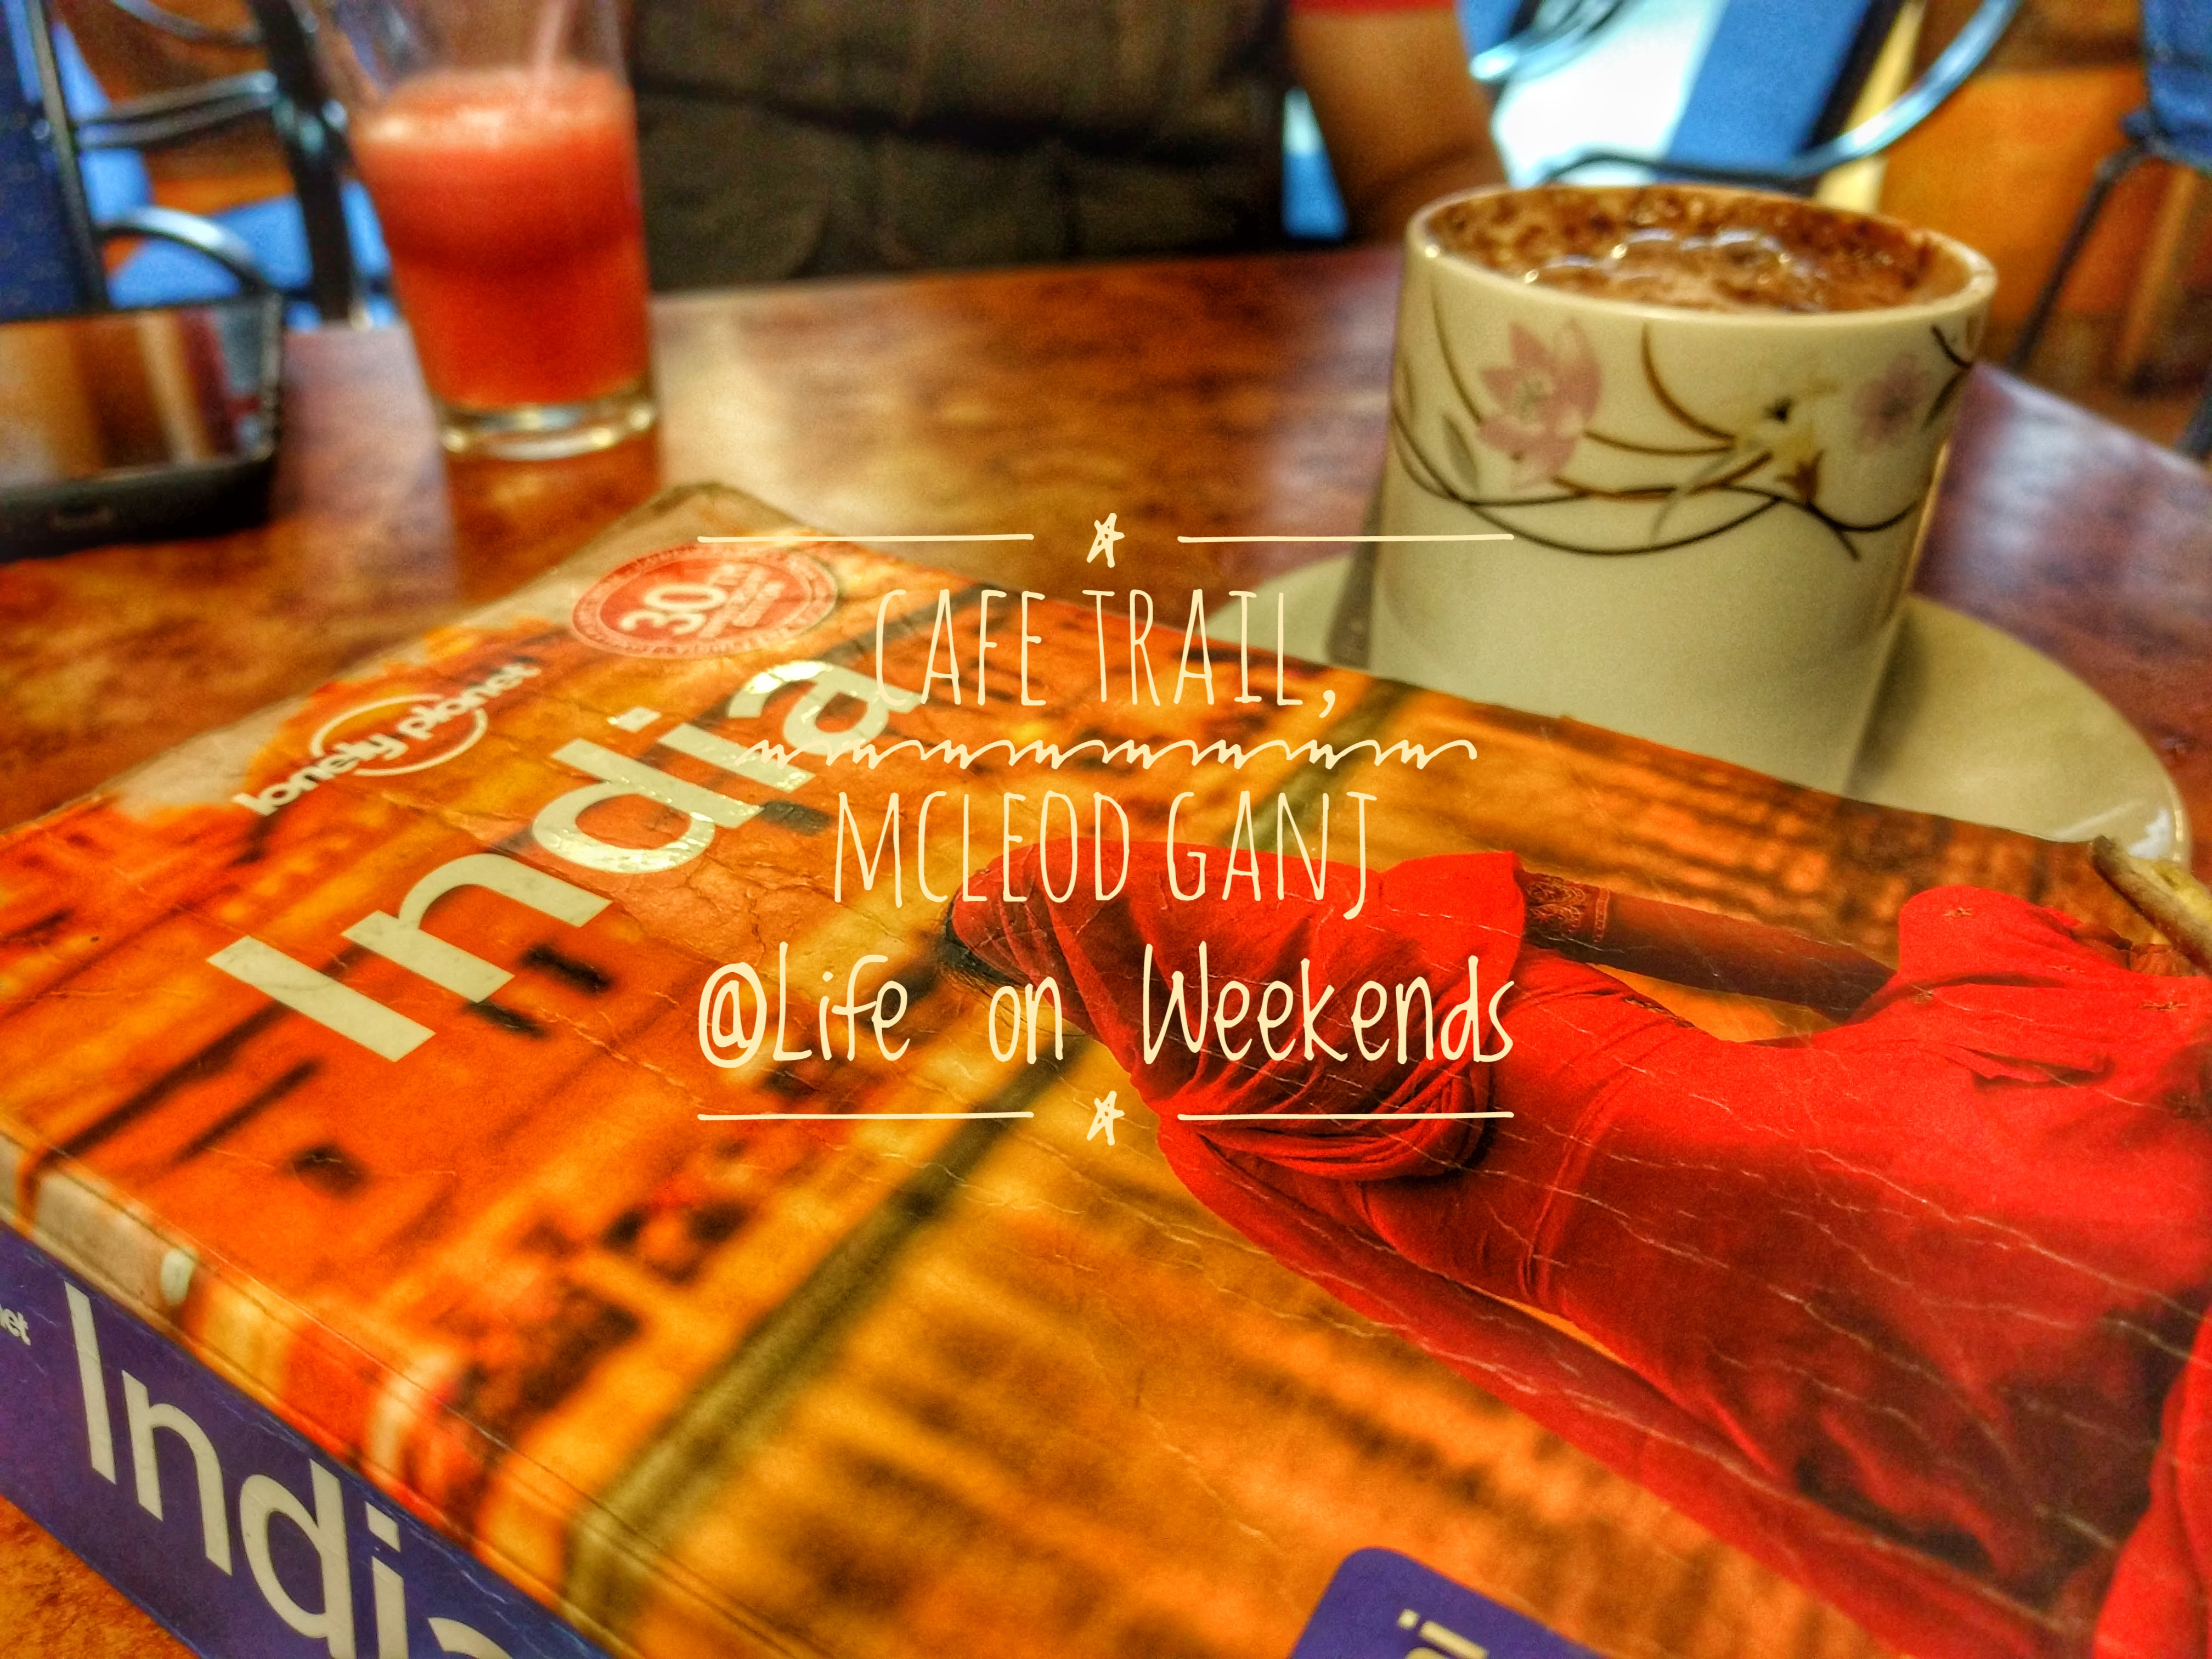 Four Seasons Cafe, McLeod Ganj @Life on Weekends